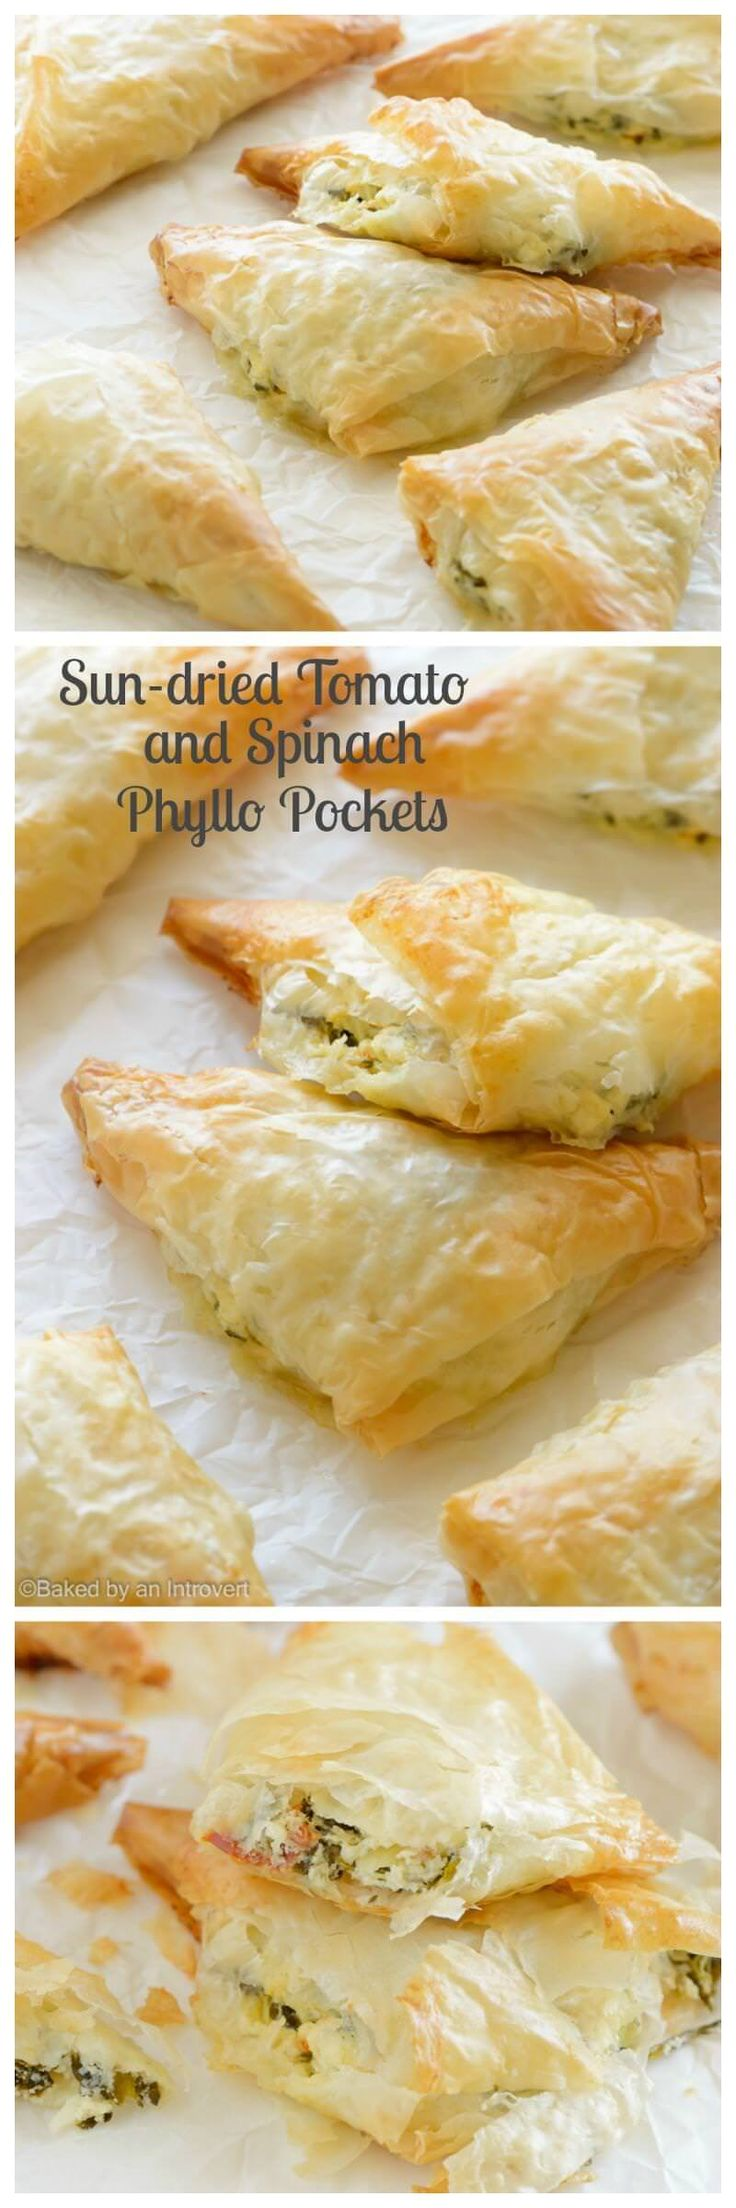 Layers of phyllo wrapped around a creamy sun-dried tomato and spinach filling. Light, crispy and flakey, these sun-dried tomato spinach phyllo pockets make for a great snack!